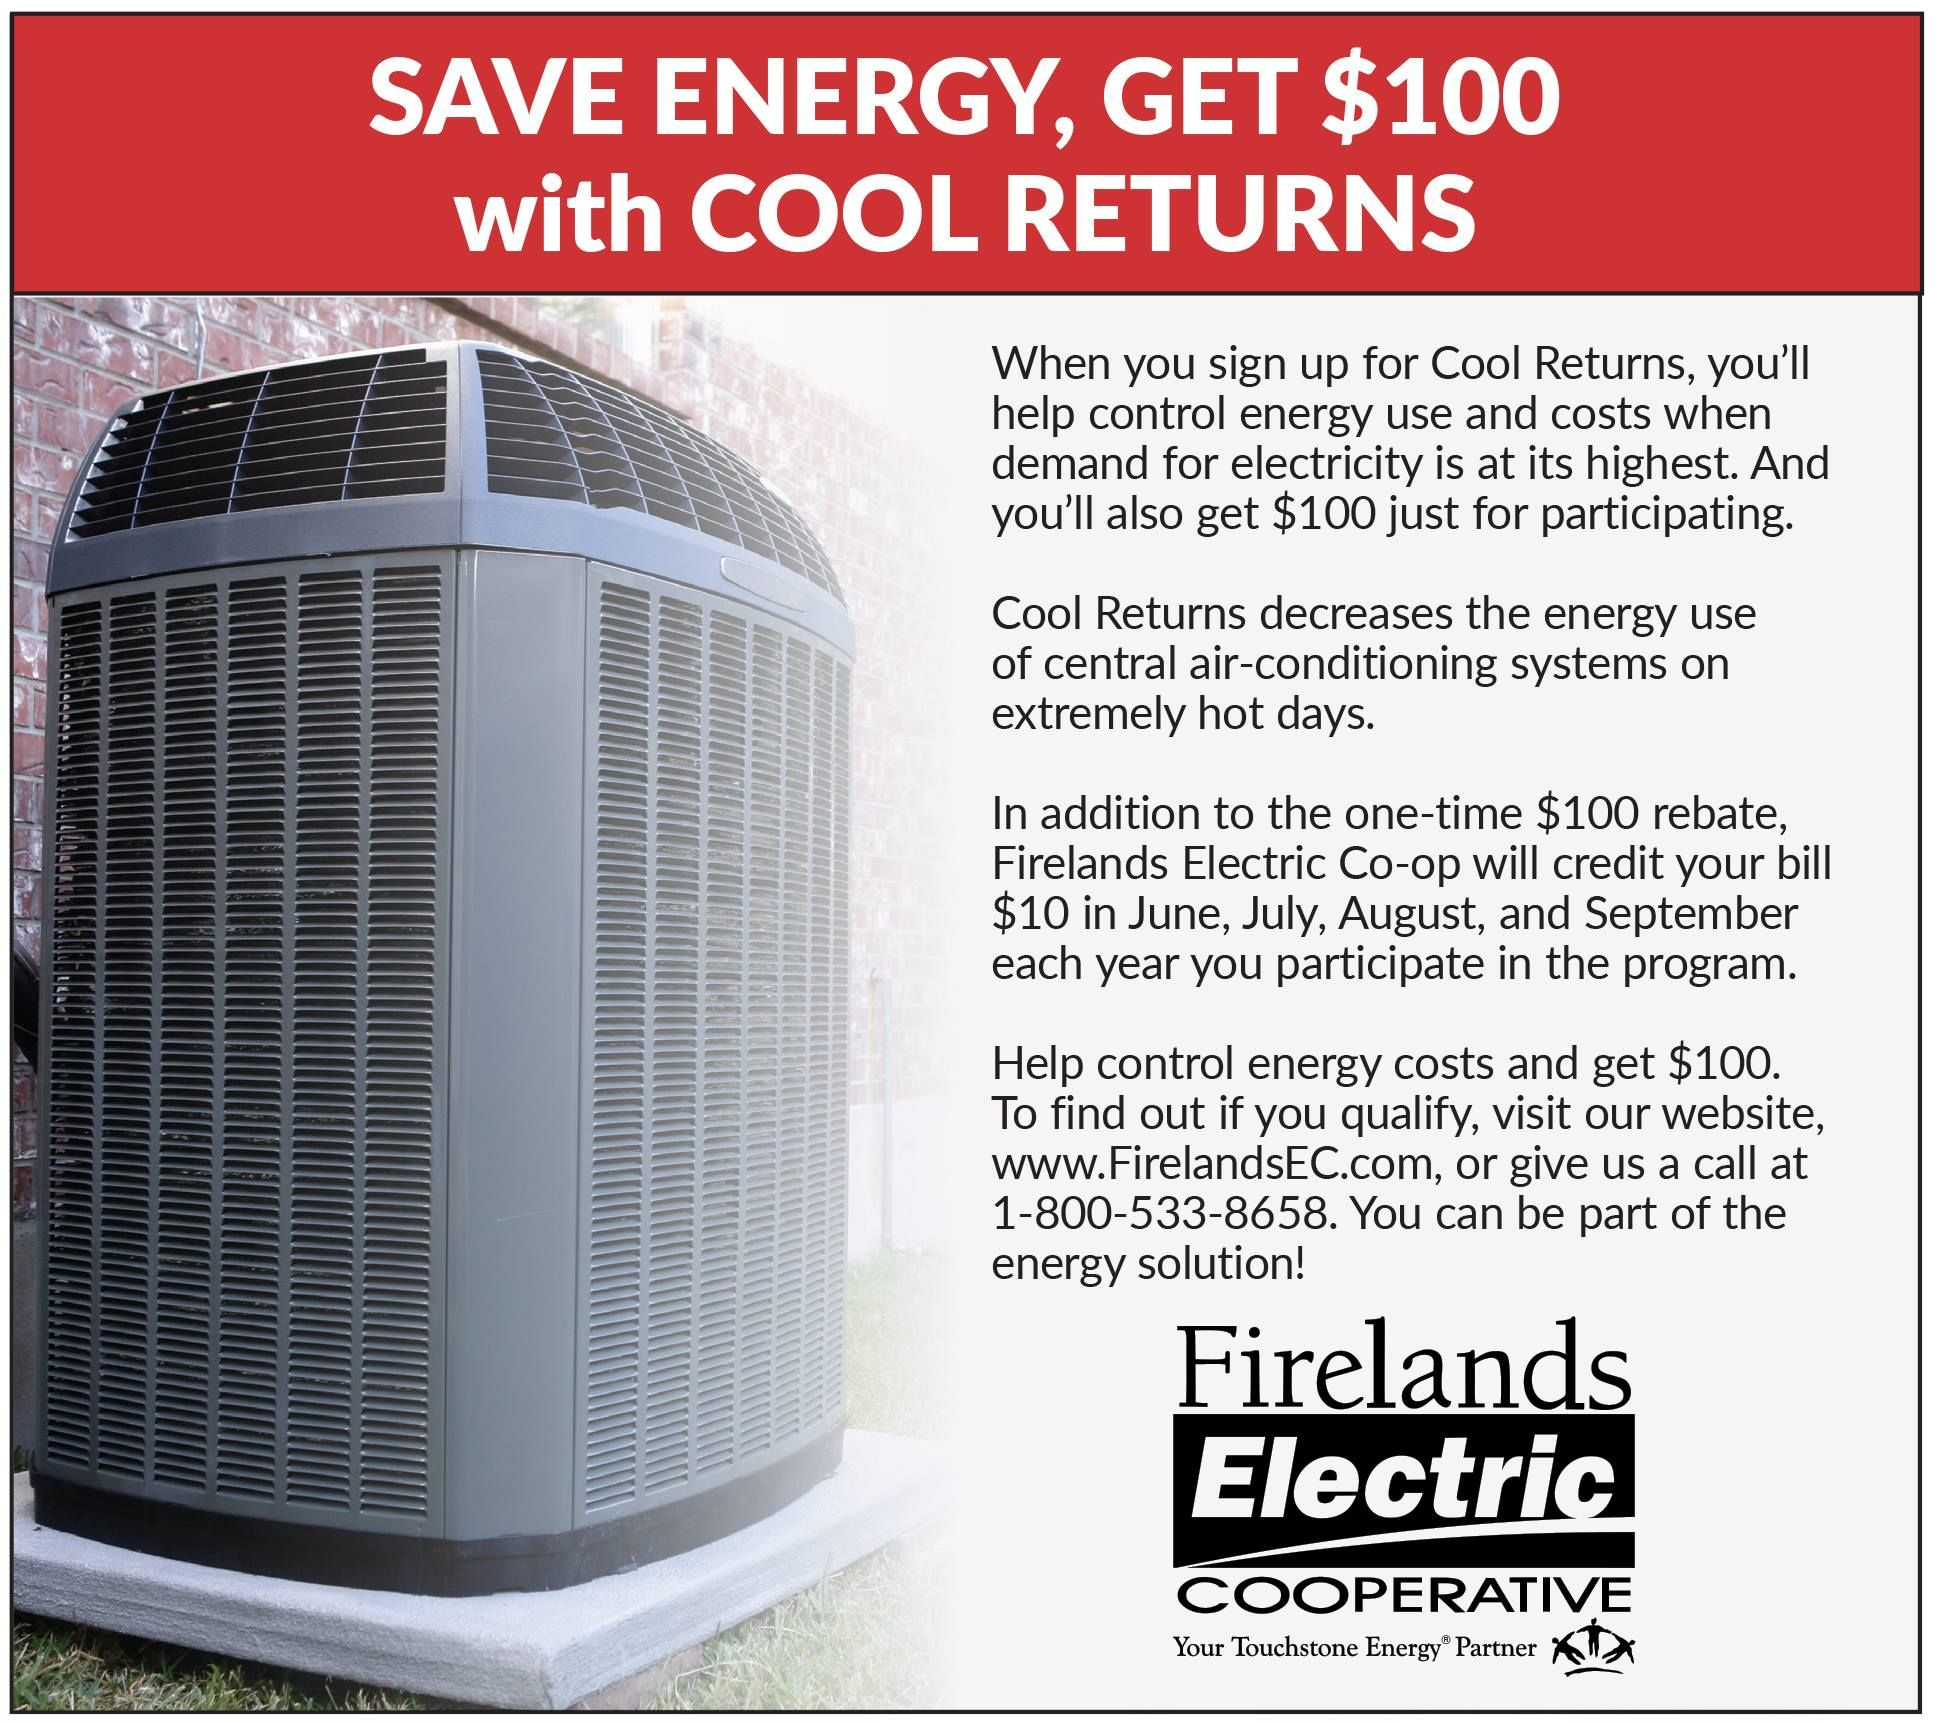 Energy Efficiency image by Firelands Electric Coop